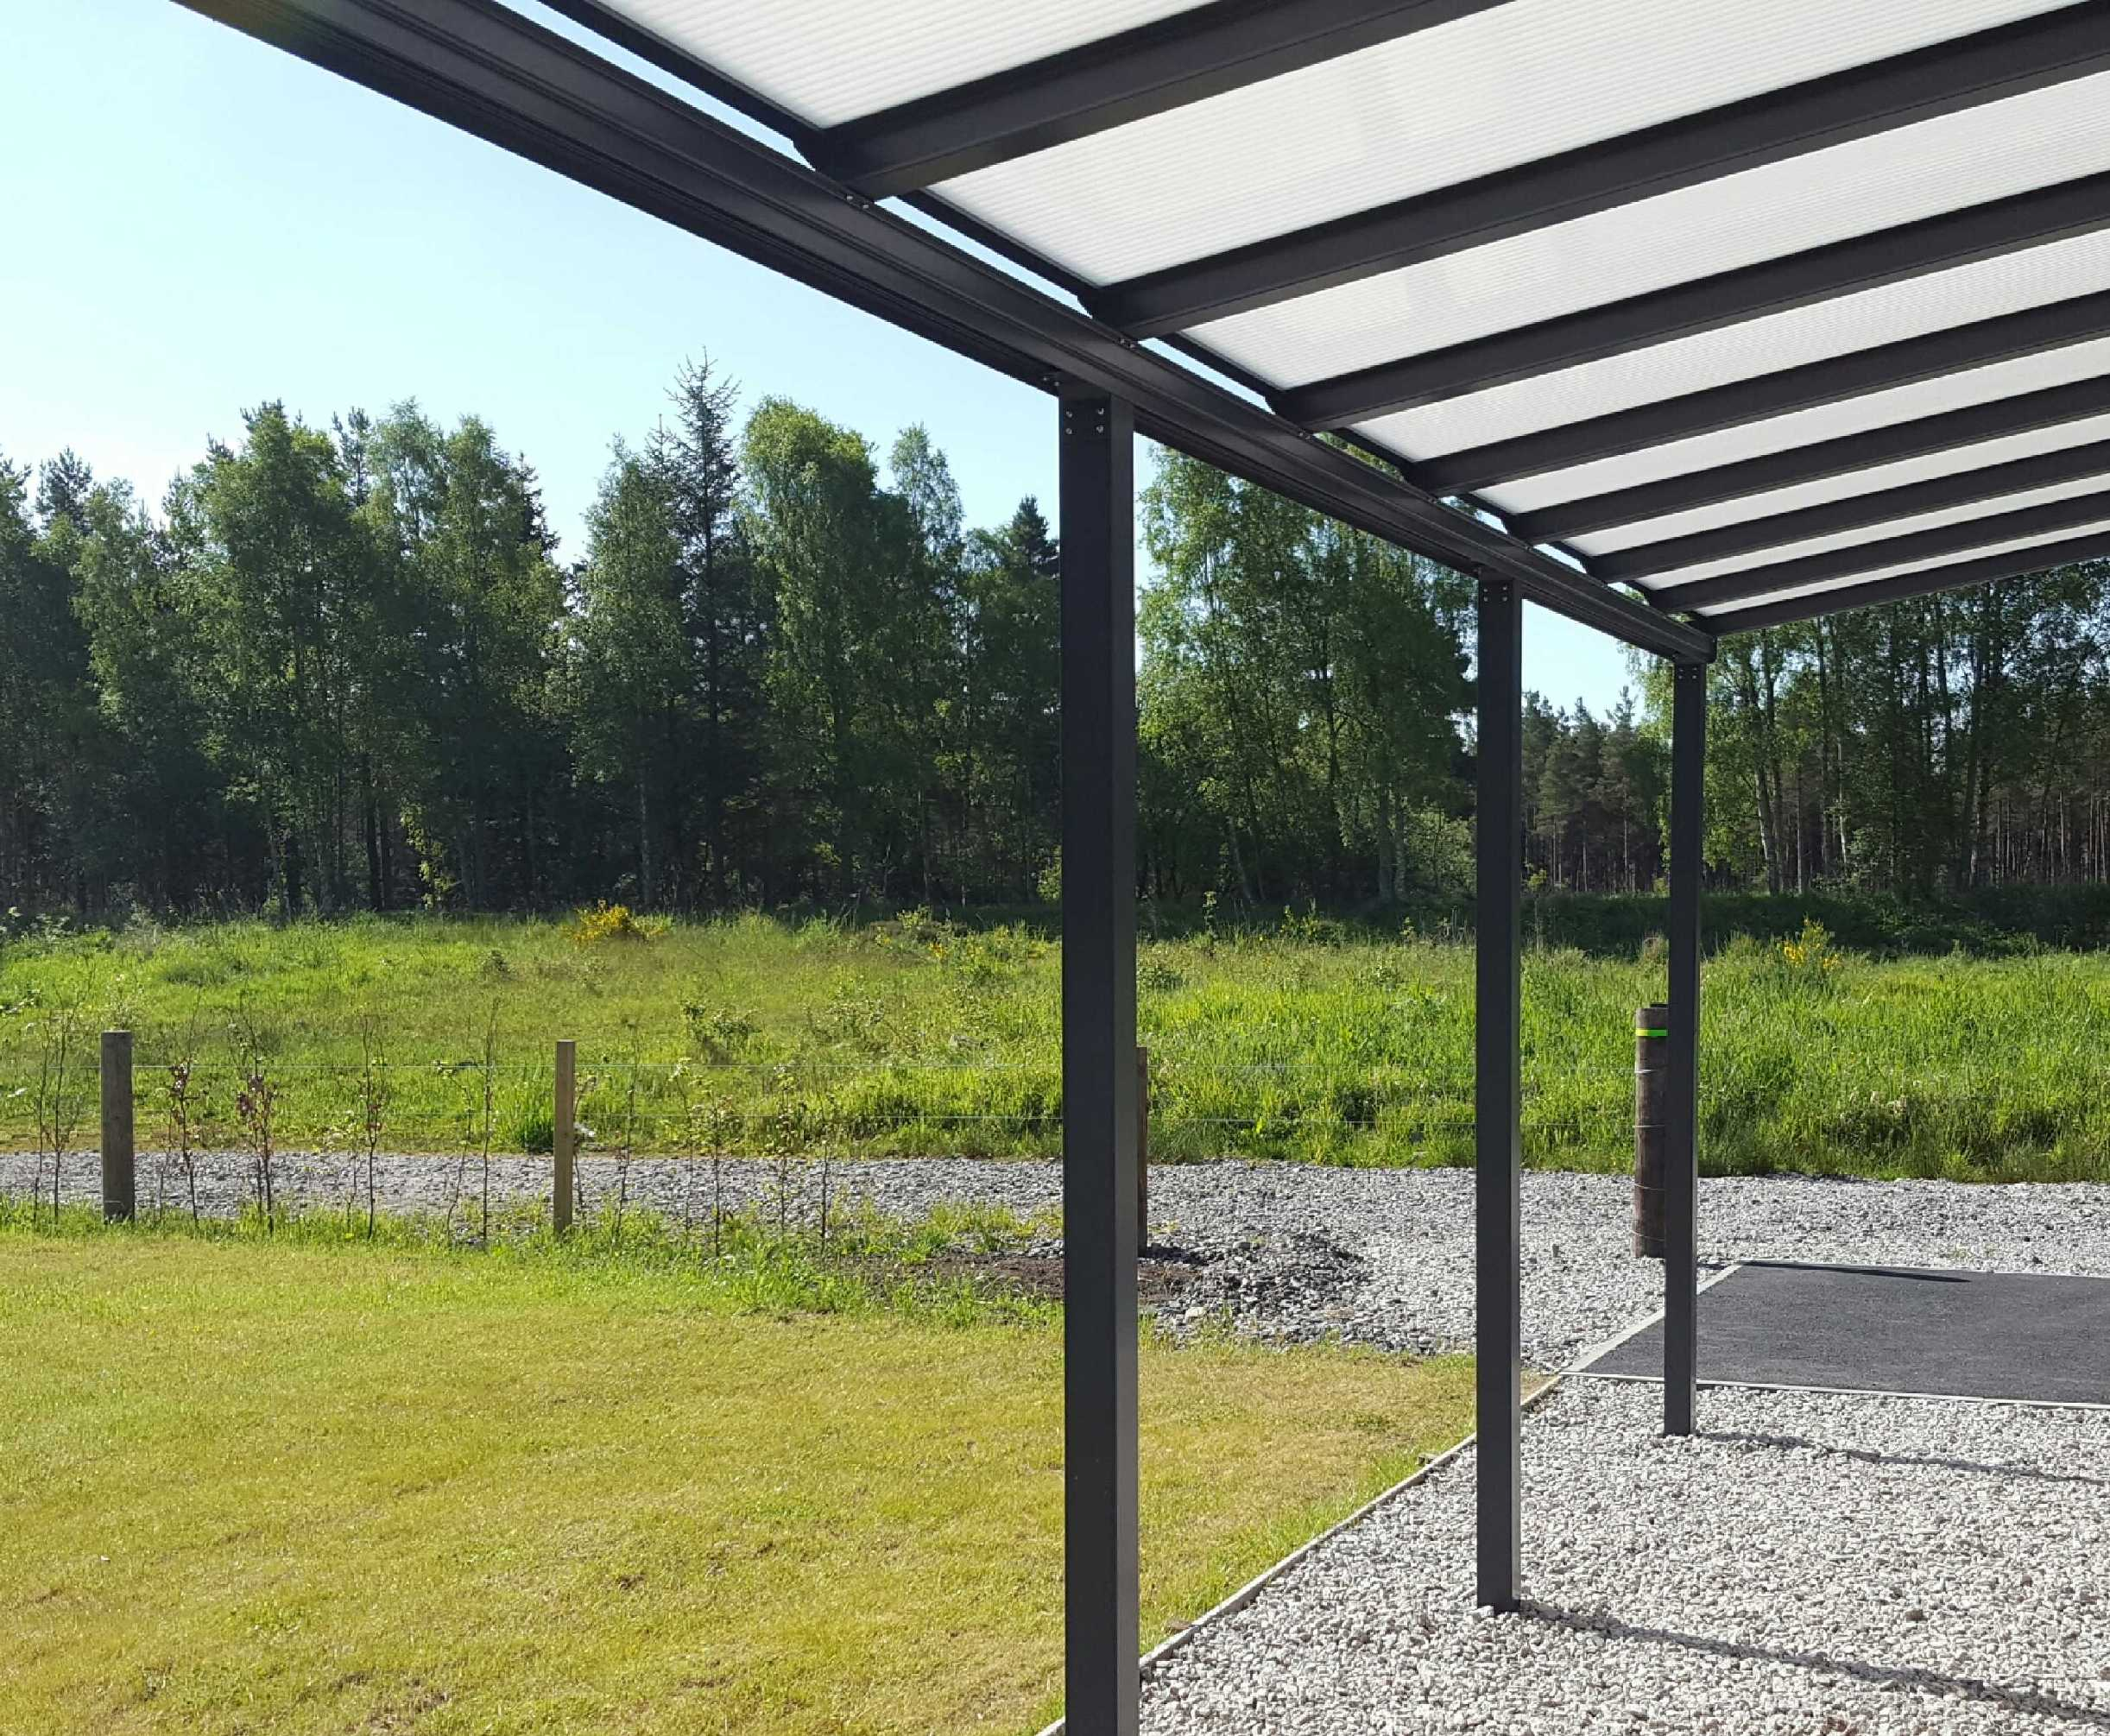 Omega Smart Lean-To Canopy, Anthracite Grey, 16mm Polycarbonate Glazing - 12.0m (W) x 2.0m (P), (5) Supporting Posts